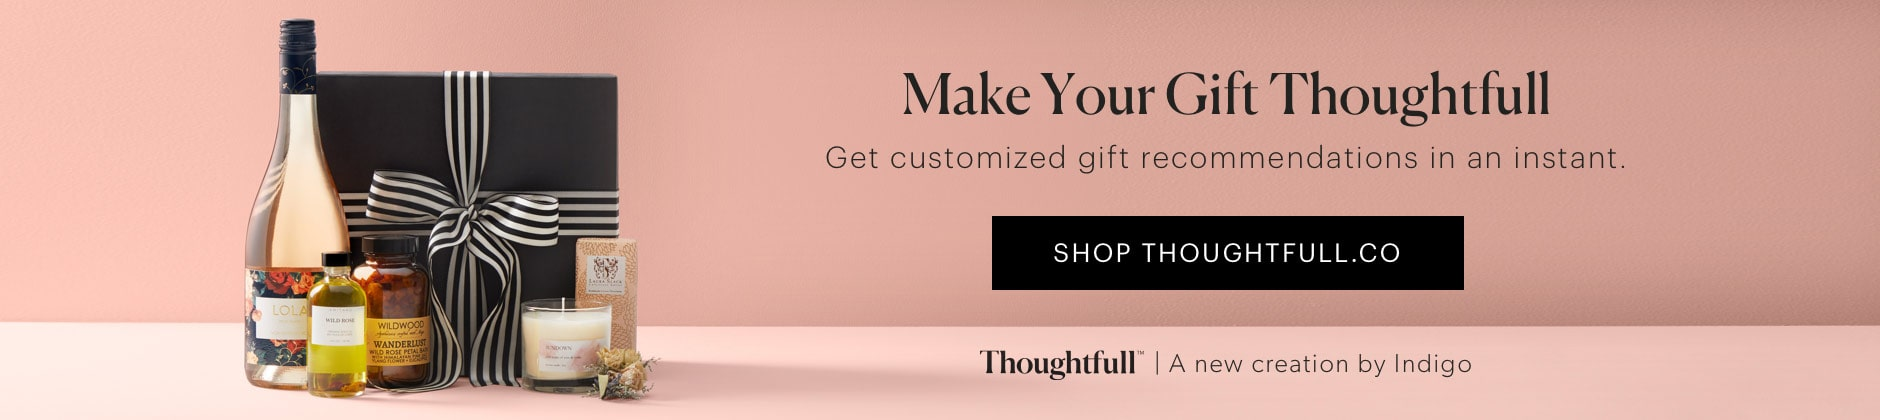 NEW! Gifts that deliver instantly! Giftable experiences and subscriptions that deliver right away via email. Shop Thoughtfull™ - a new creation by Indigo.